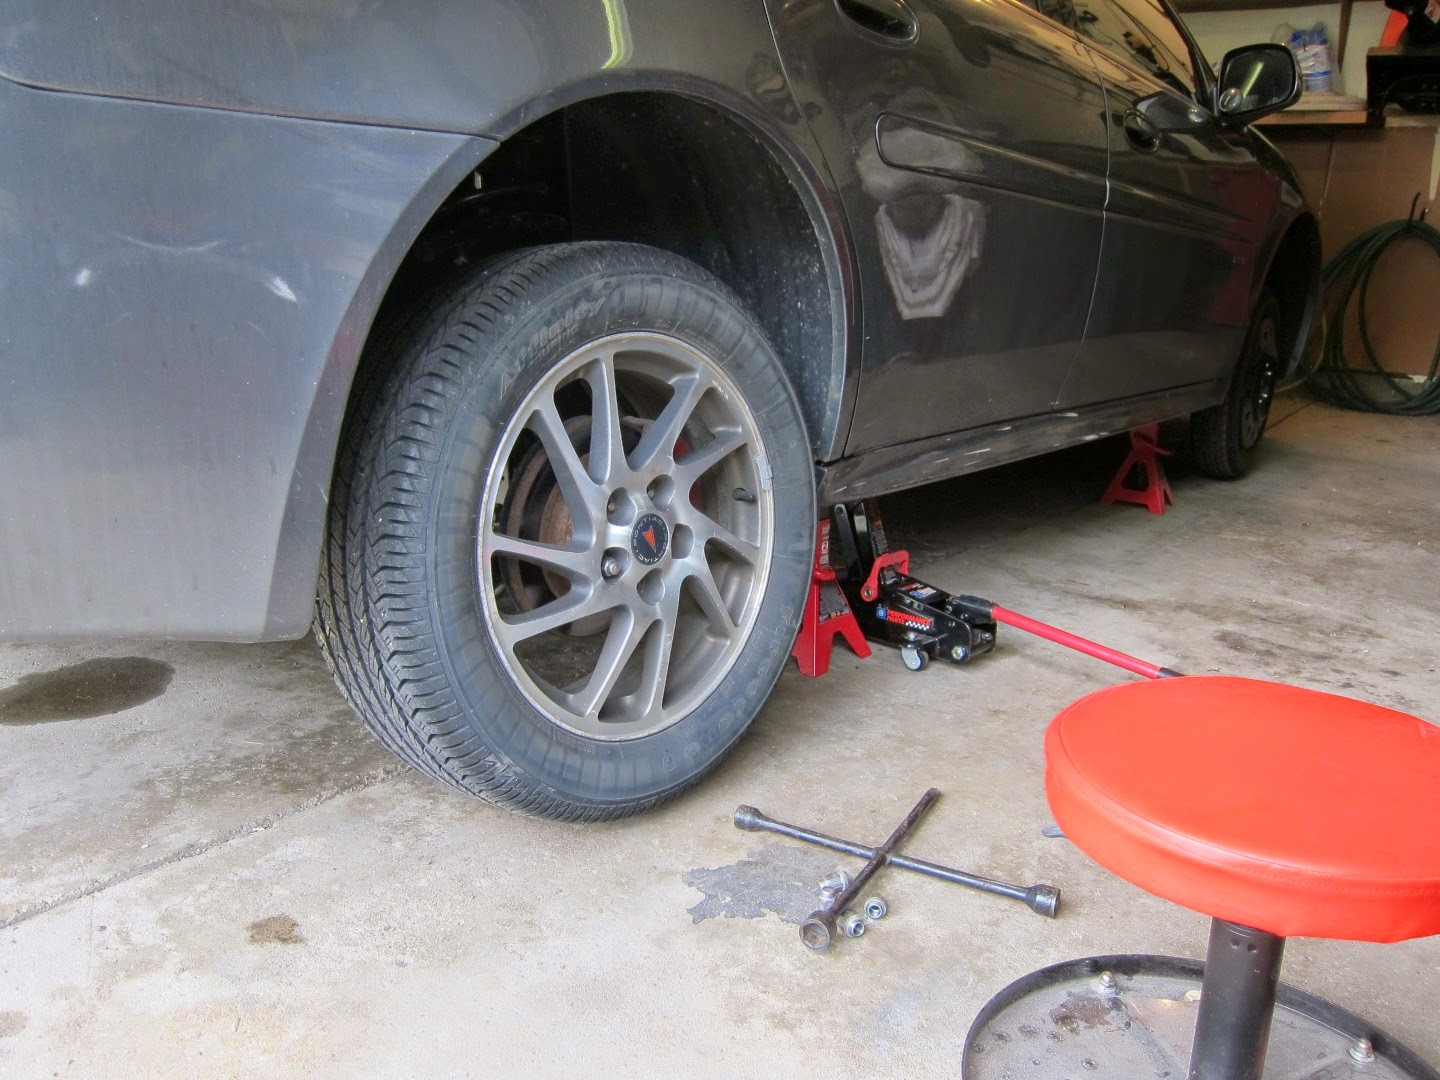 how to change a tire, rotate tires